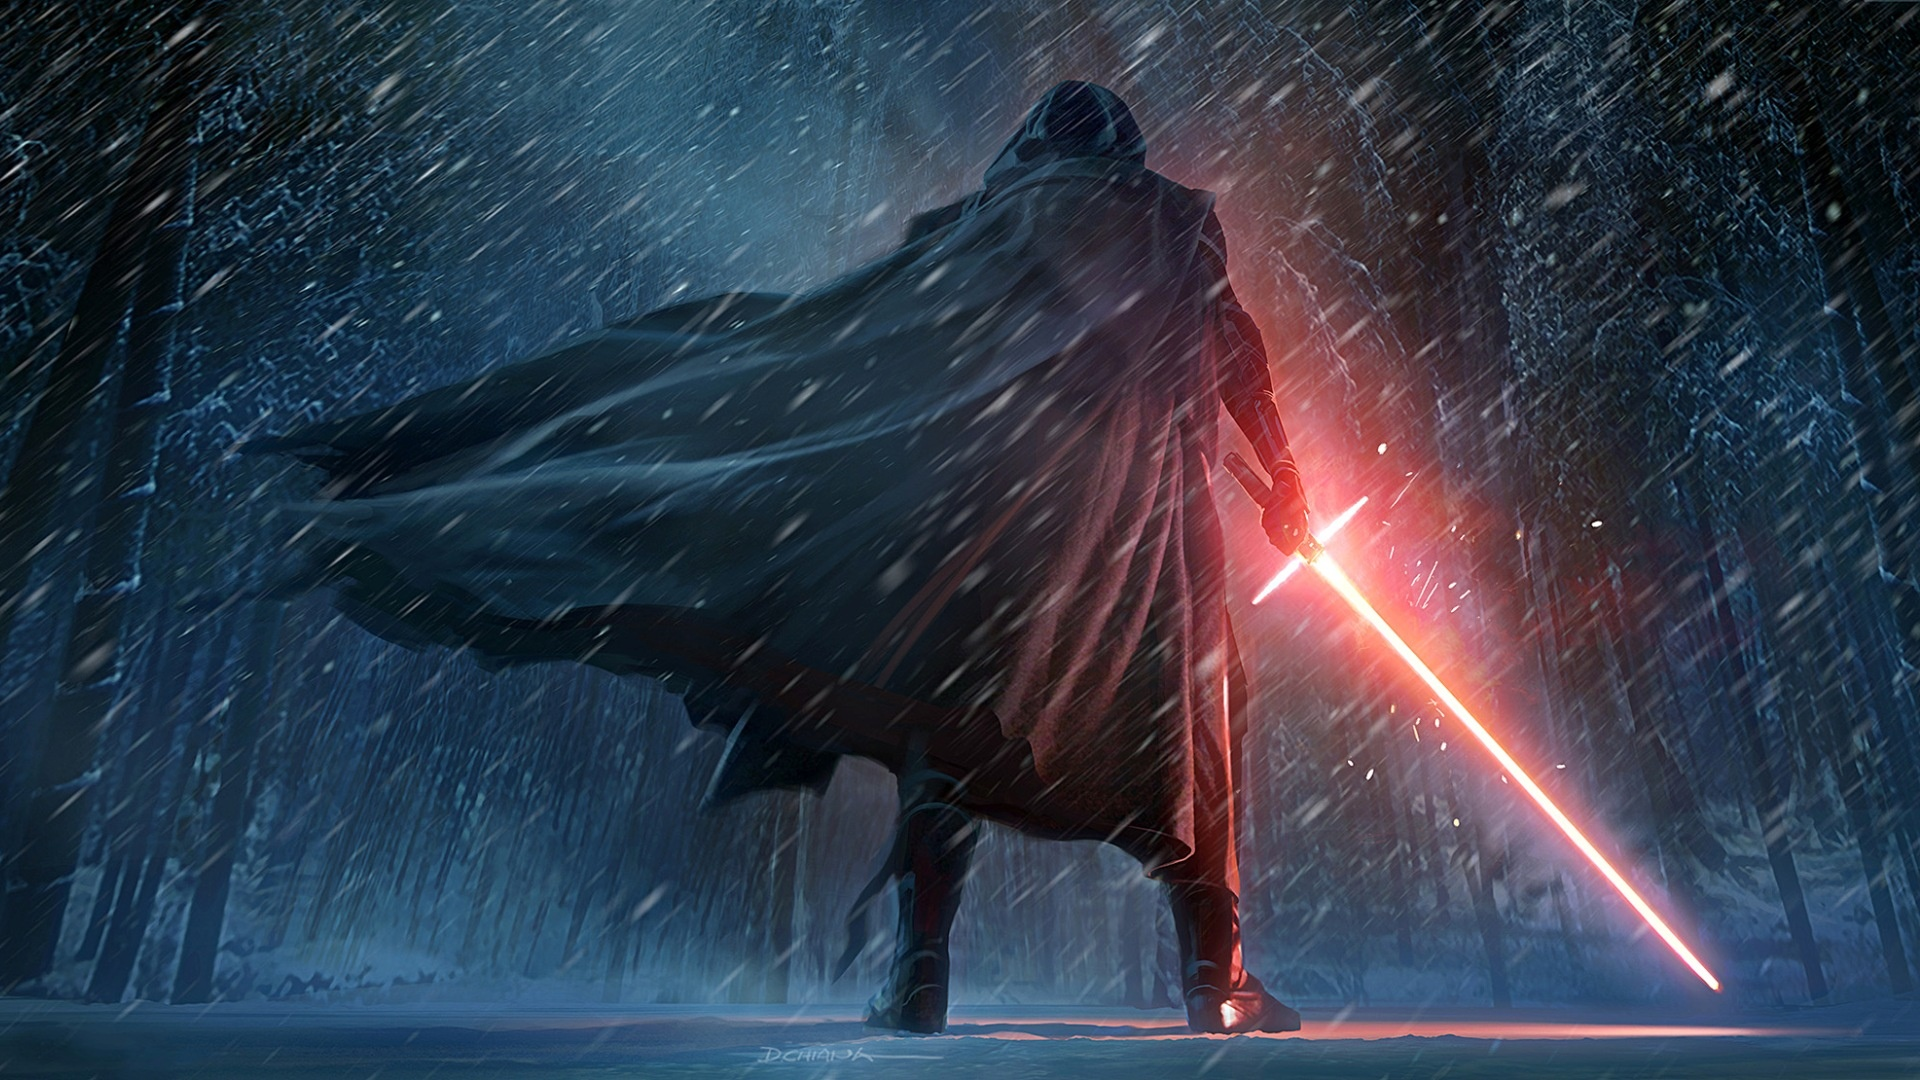 Star Wars Episode Vii The Force Awakens Wallpapers 1920x1080